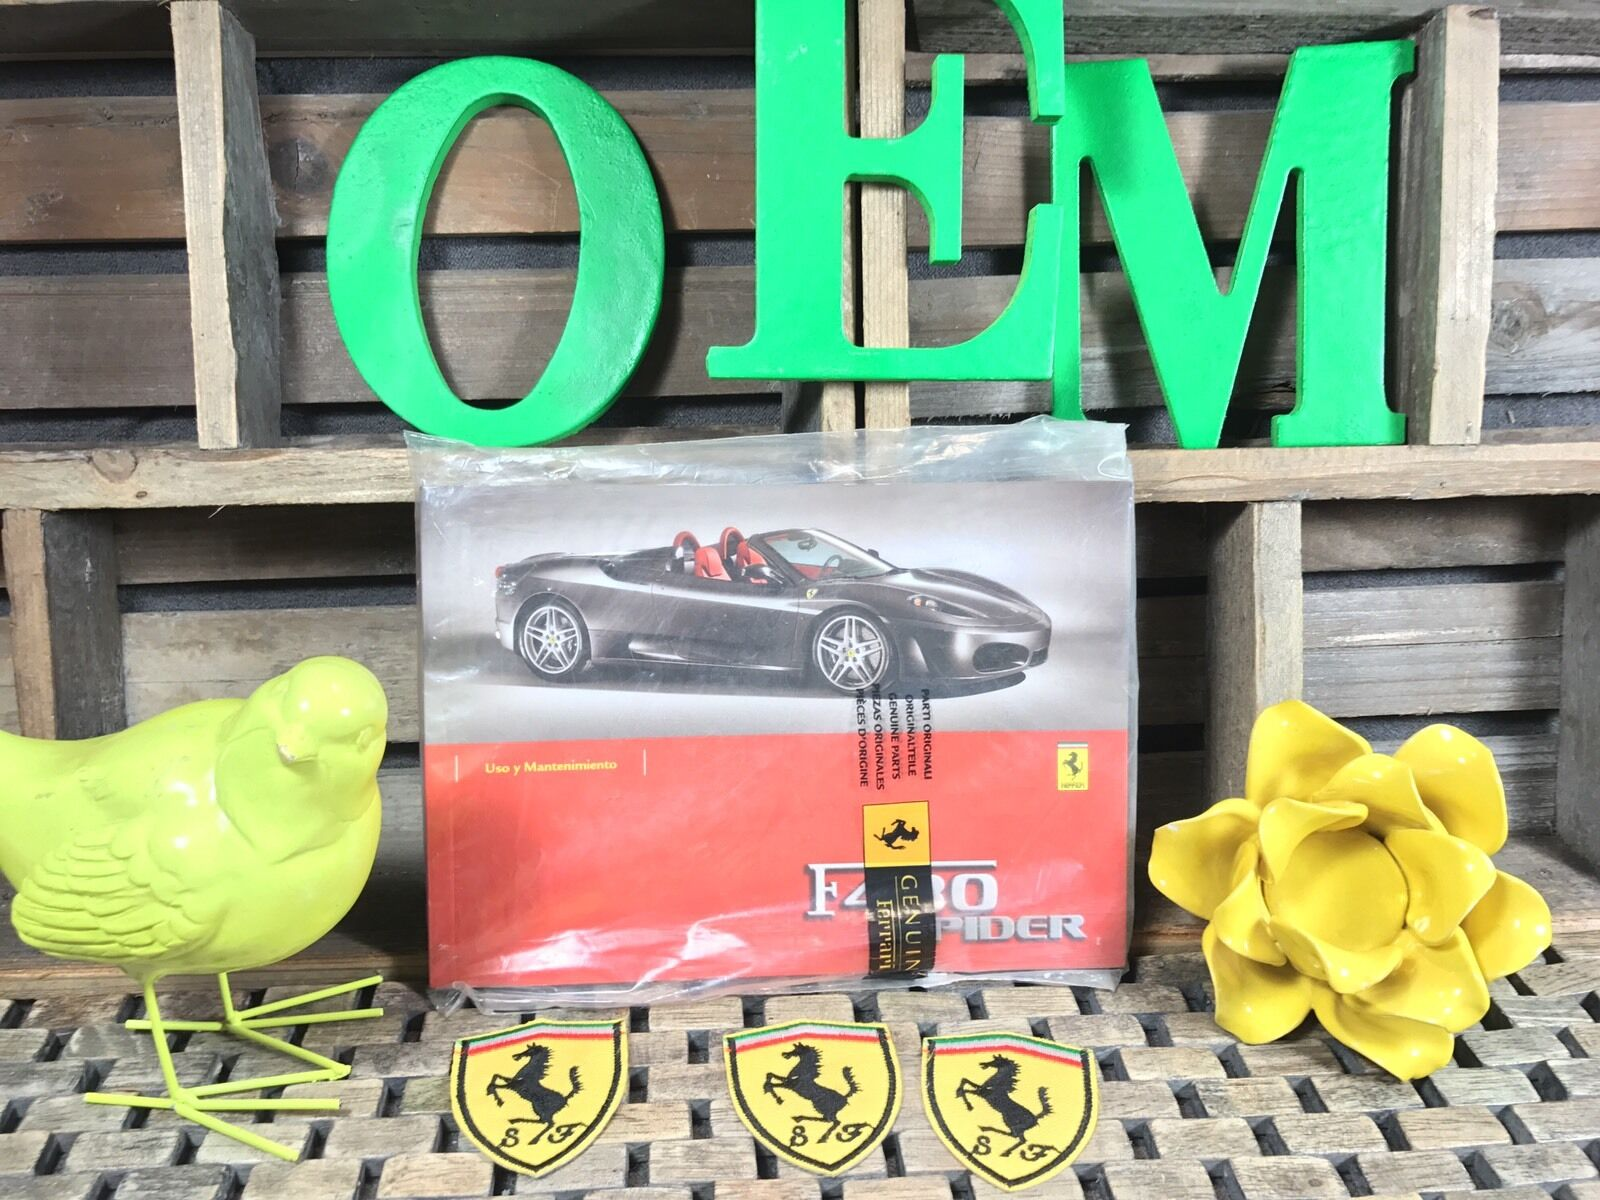 F430 SPIDER OWNERS MANUAL ((ITALIAN VERSION)) NOS OeM)) NEW FERRARI on 1994 chevy astro wiring diagram, 1971 ford pinto wiring diagram, 96 s10 wiring diagram, 1974 vw karmann ghia wiring diagram, 1960 triumph tr3 wiring diagram, 1997 saturn sl1 wiring diagram,